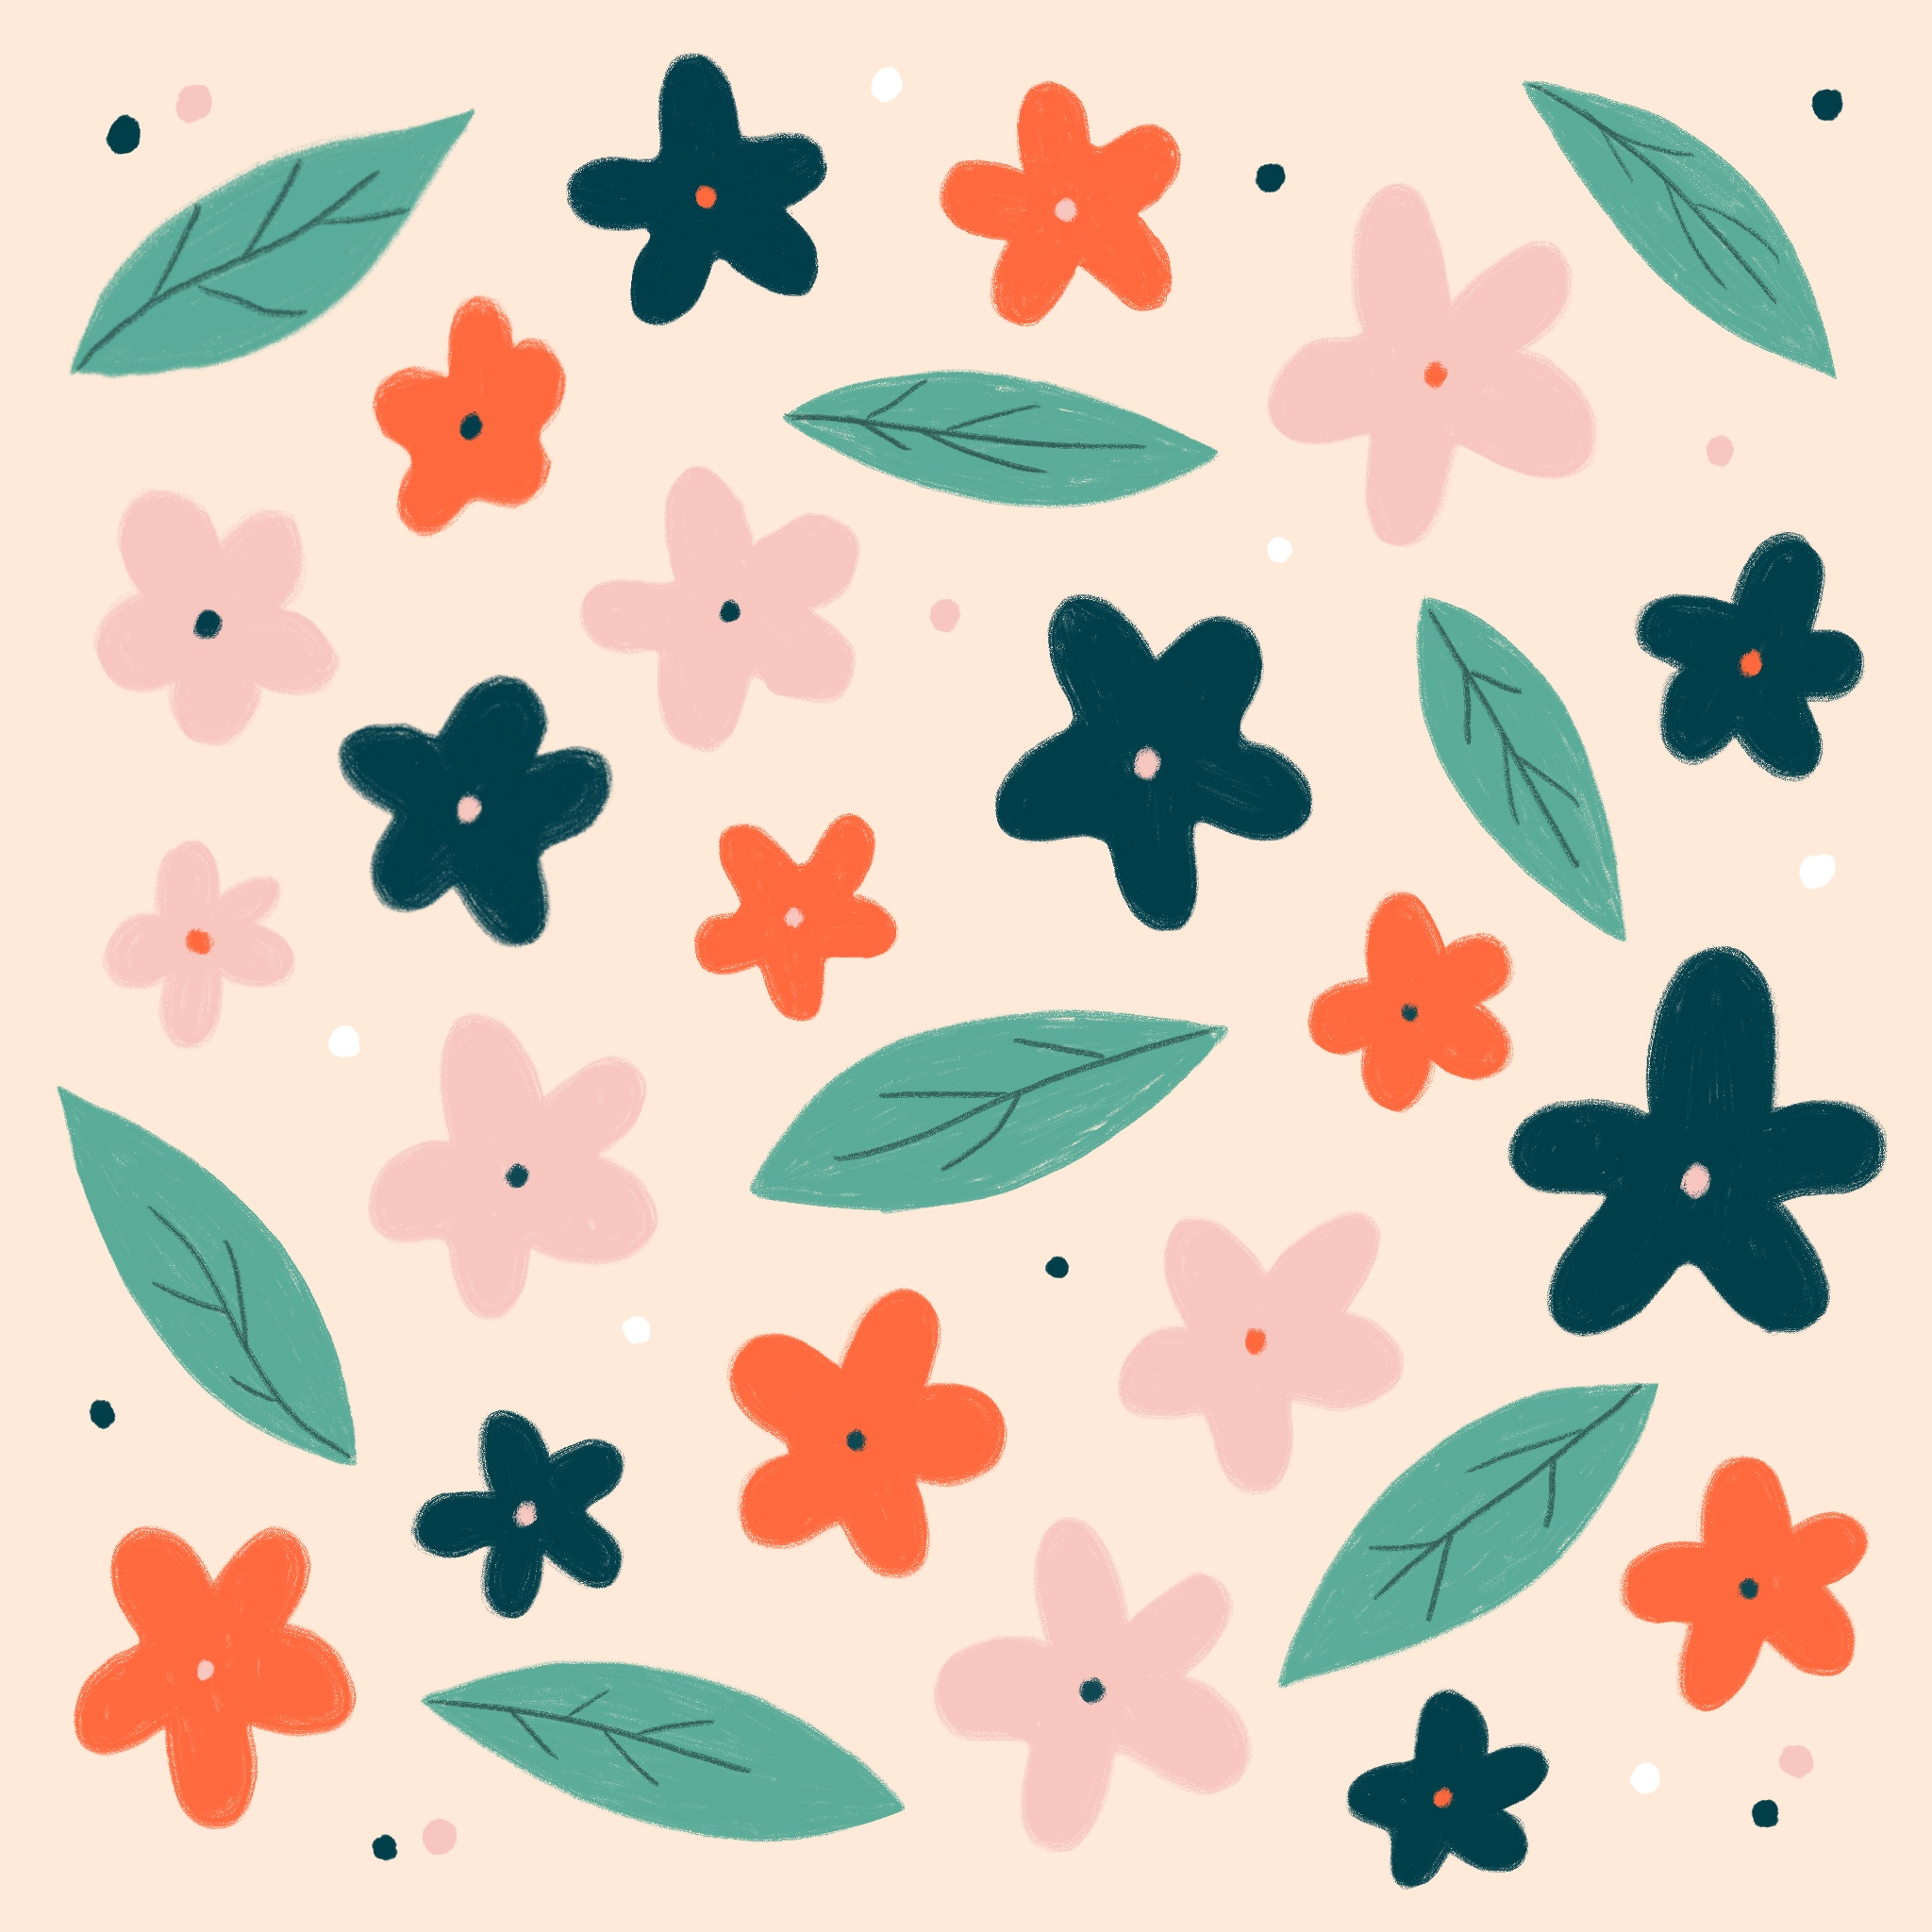 An illustrated pattern of flowers and leaves